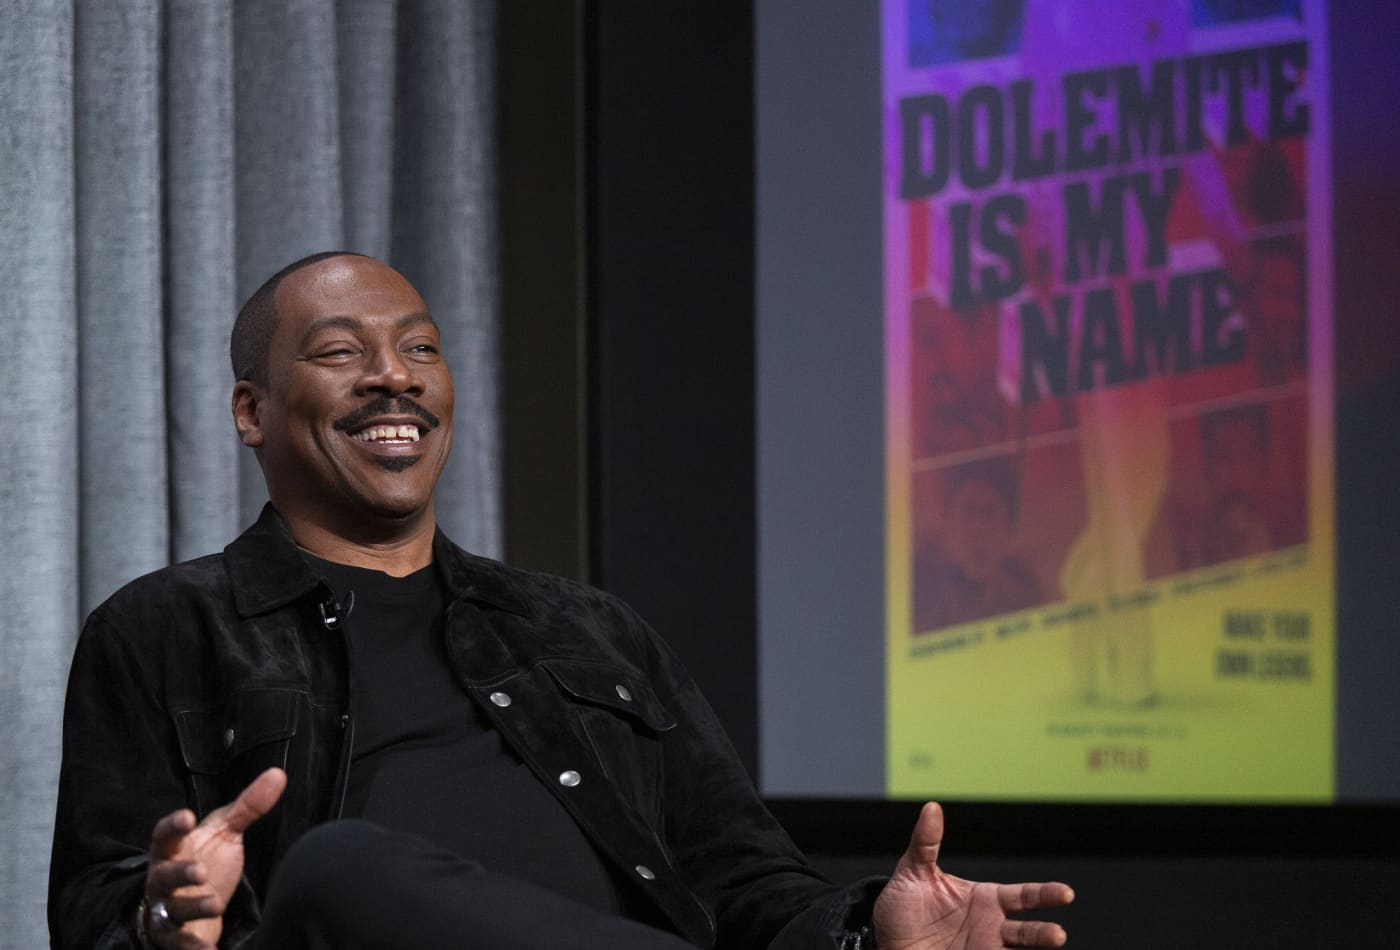 The worst career advice Eddie Murphy ever got came from Rodney Dangerfield—here's what he said